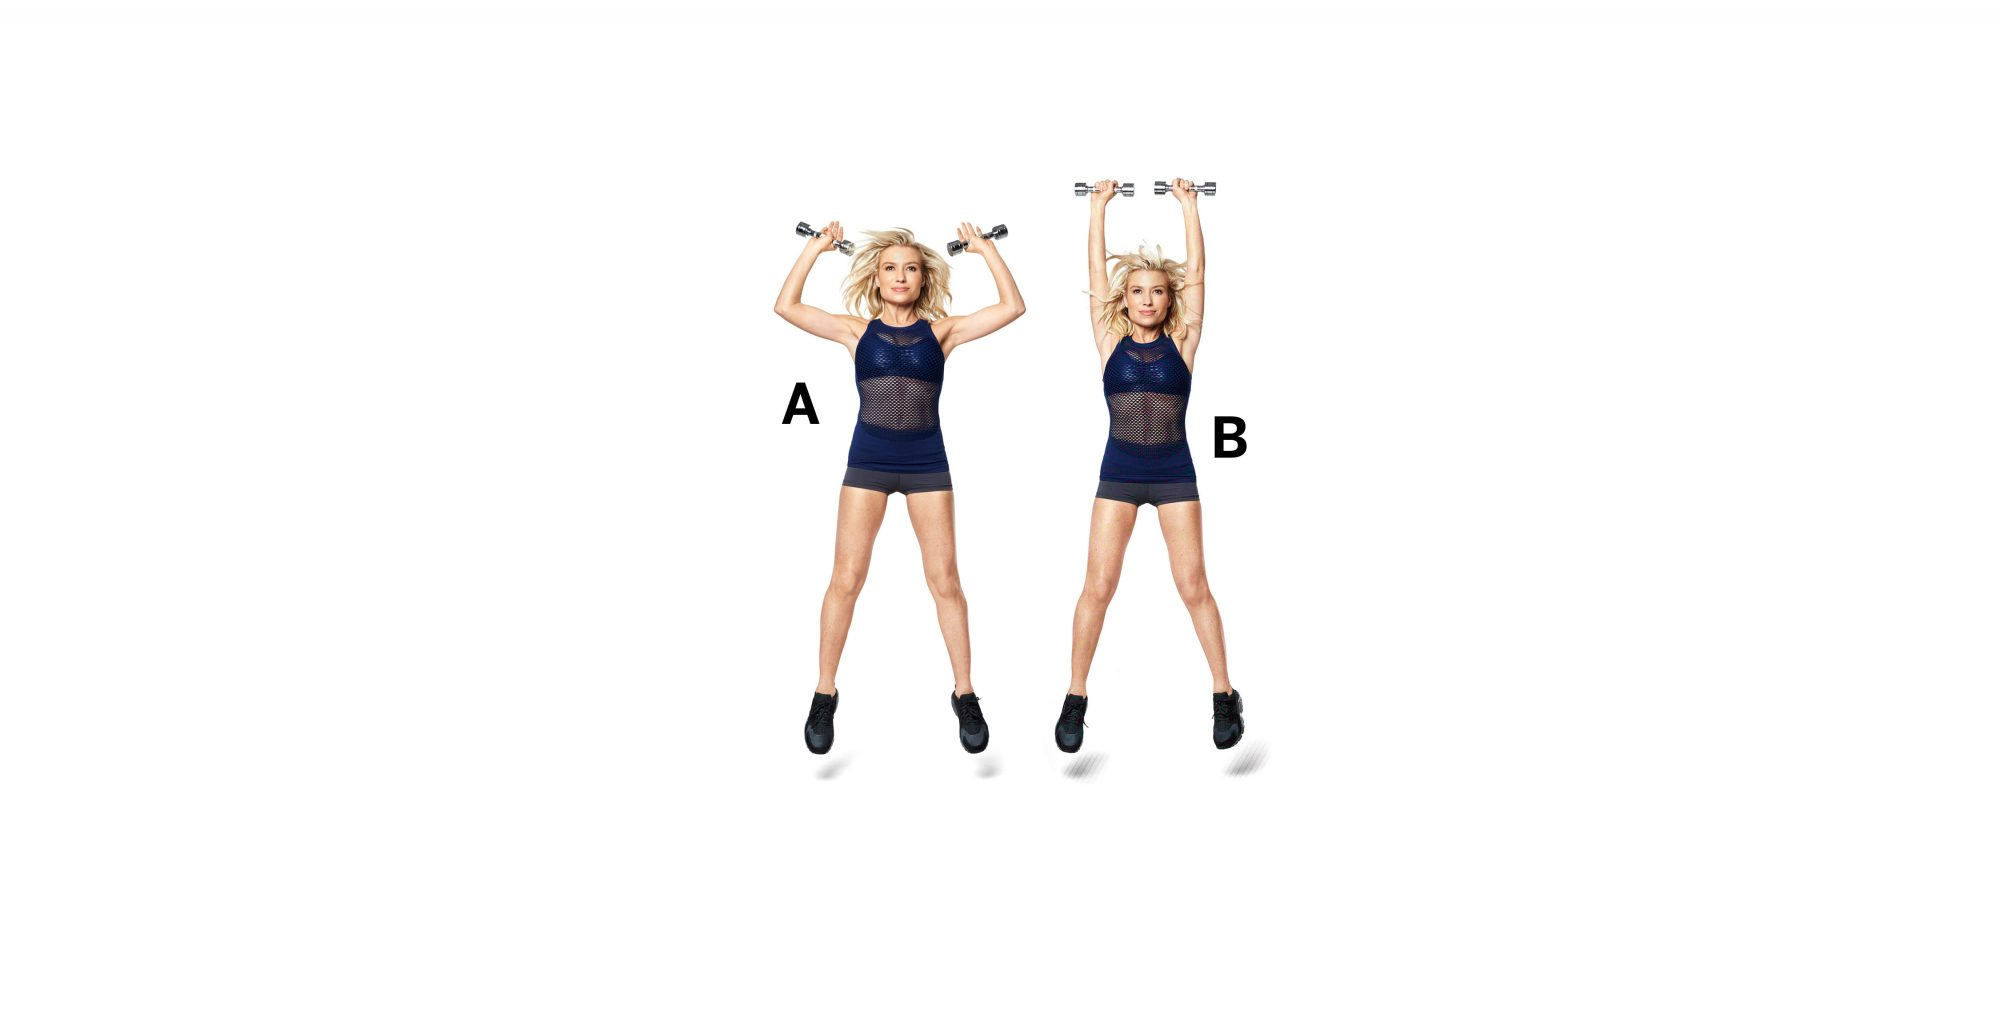 arm-press-jack-tracy-anderson